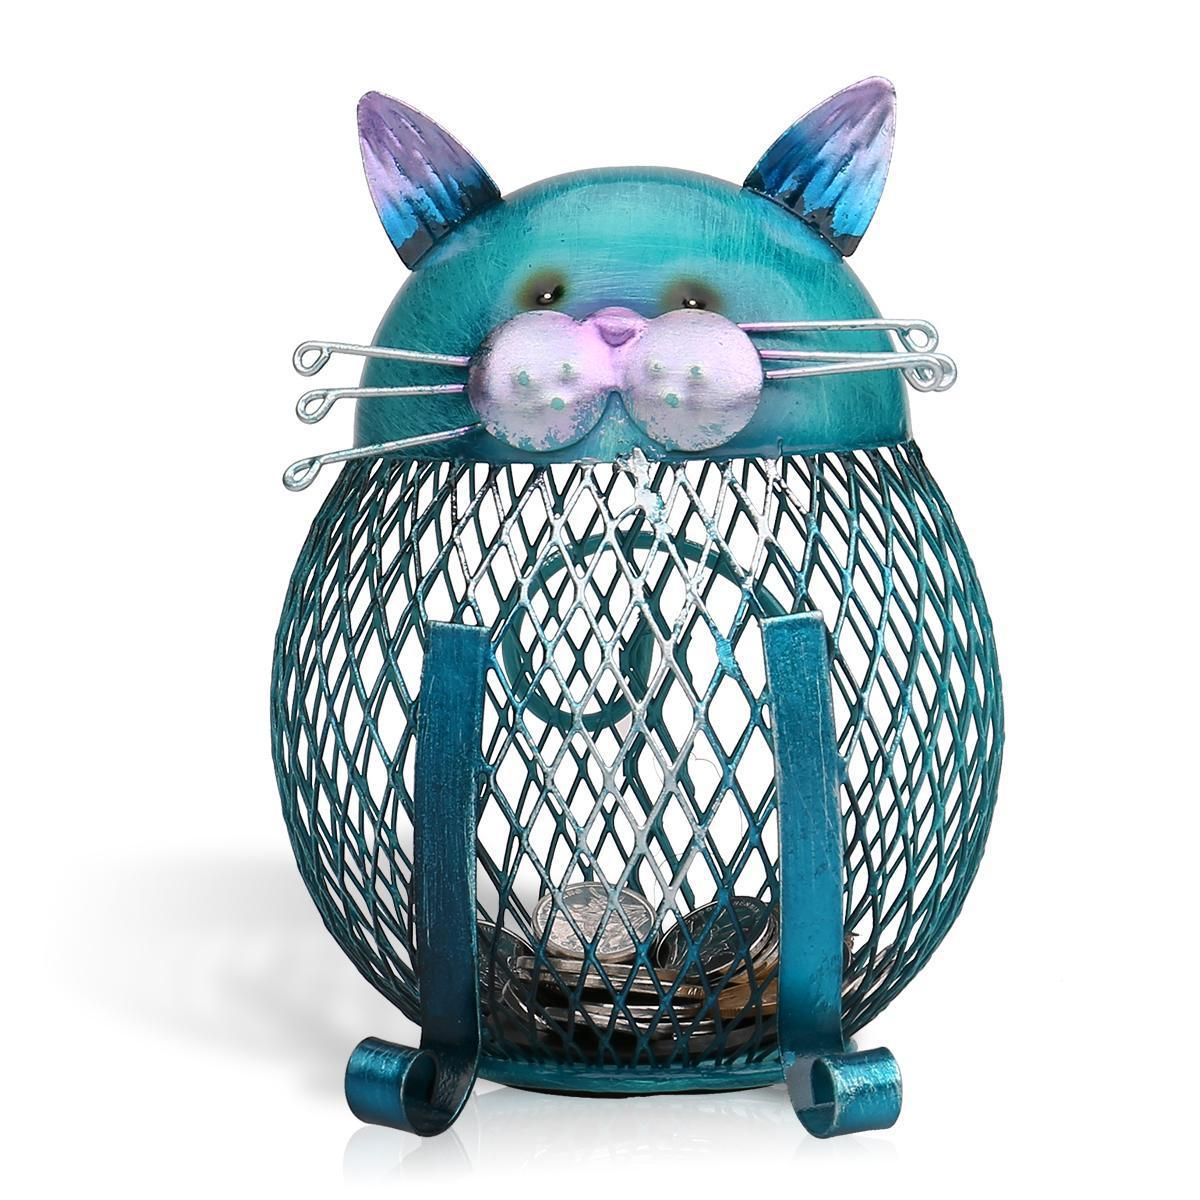 Blue cat bank shaped piggy bank metal coin bank money box figurines saving money home decor 18